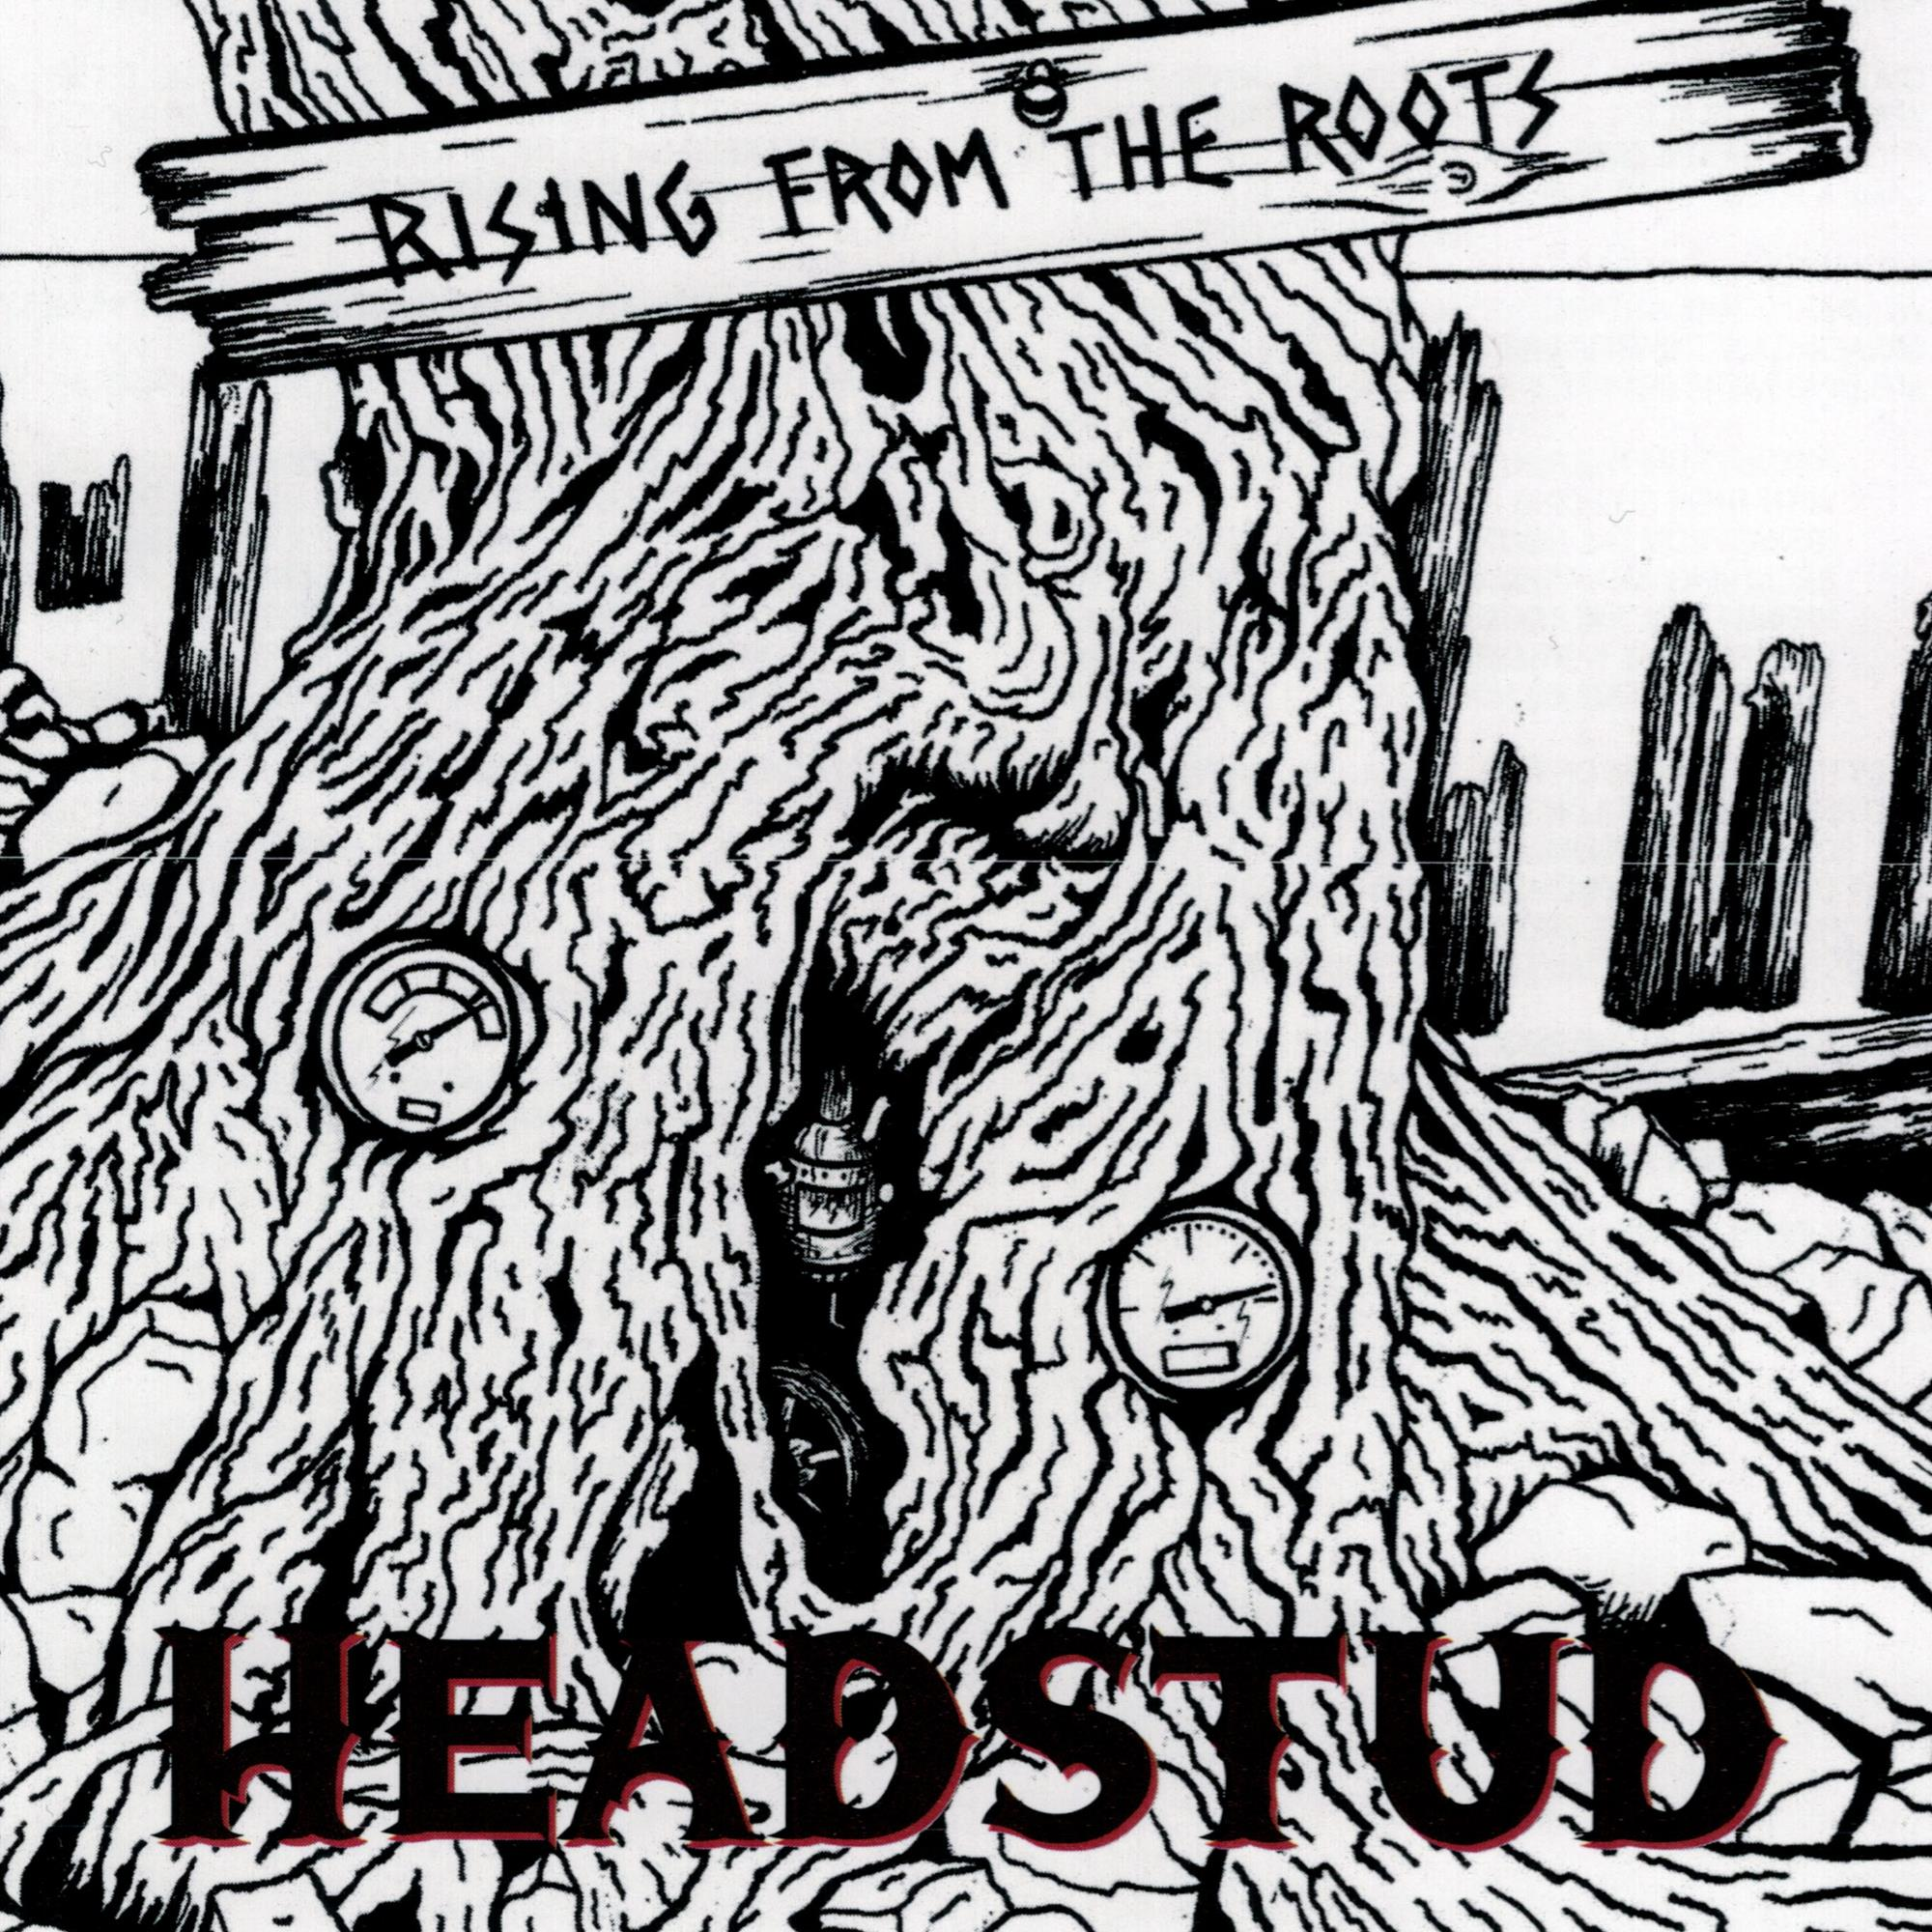 Rising From The Roots CD